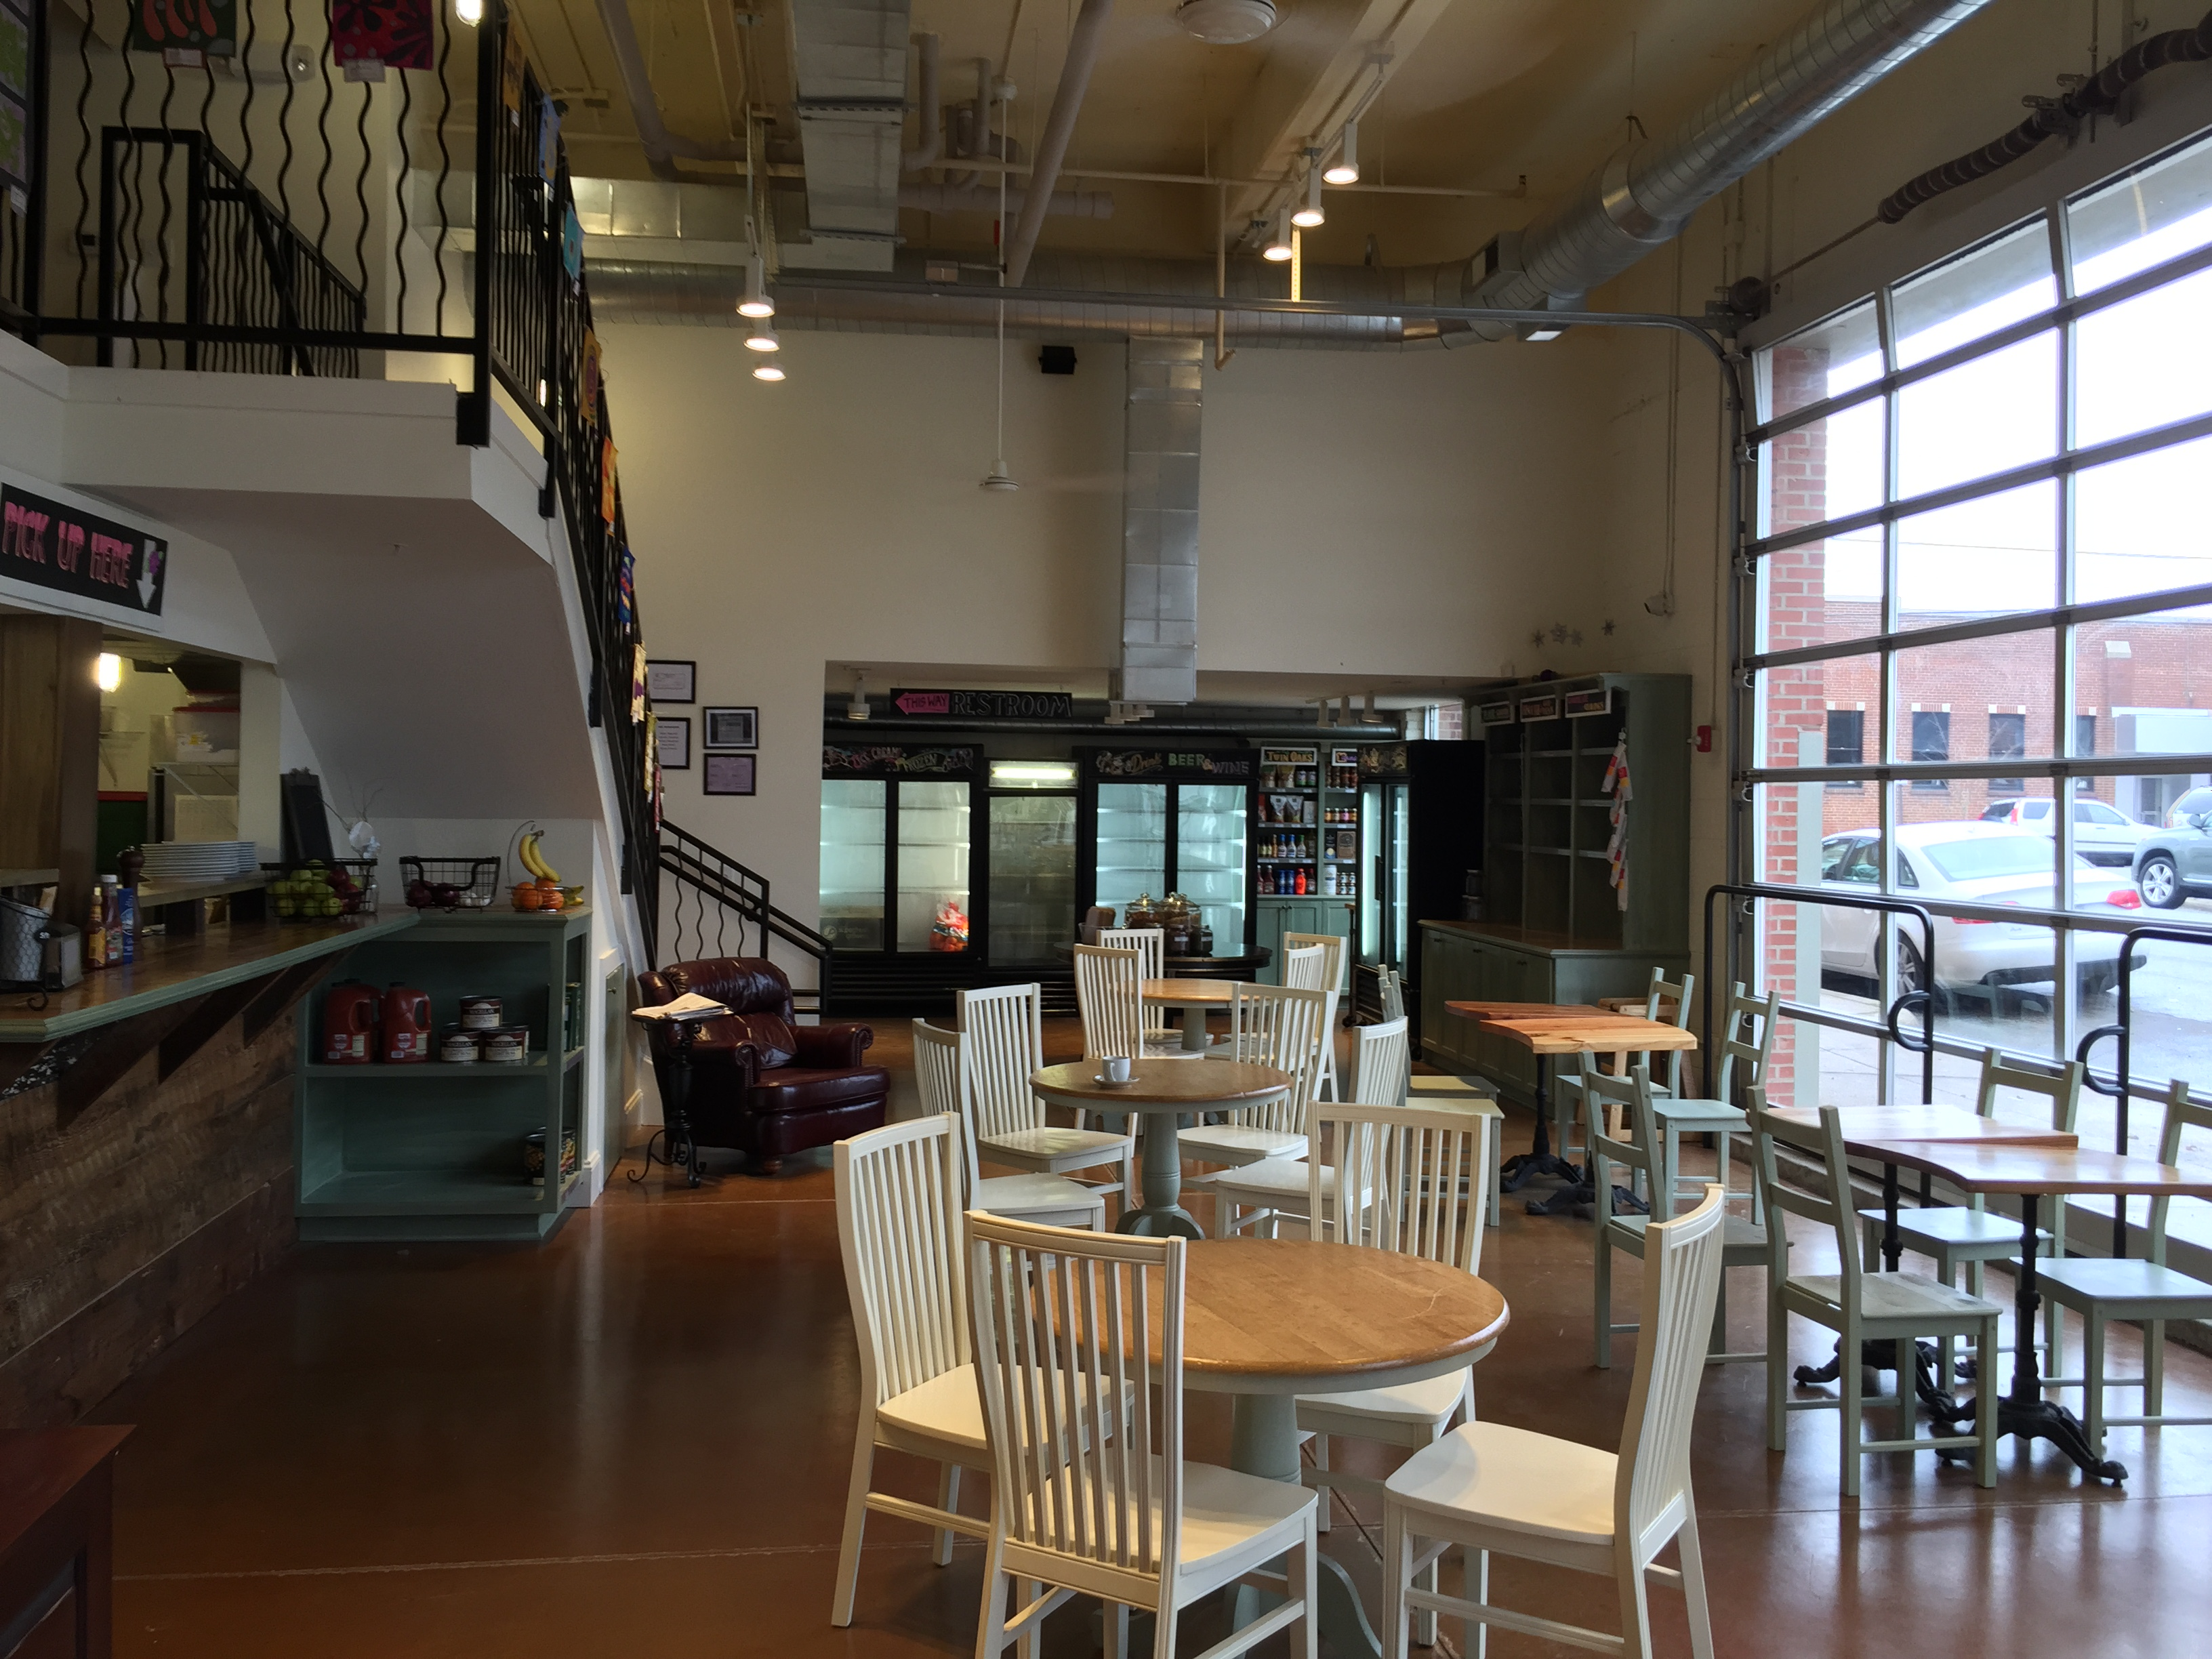 PHOTOS The Urban Farmhouse Market & Café opens in Scott s Addition